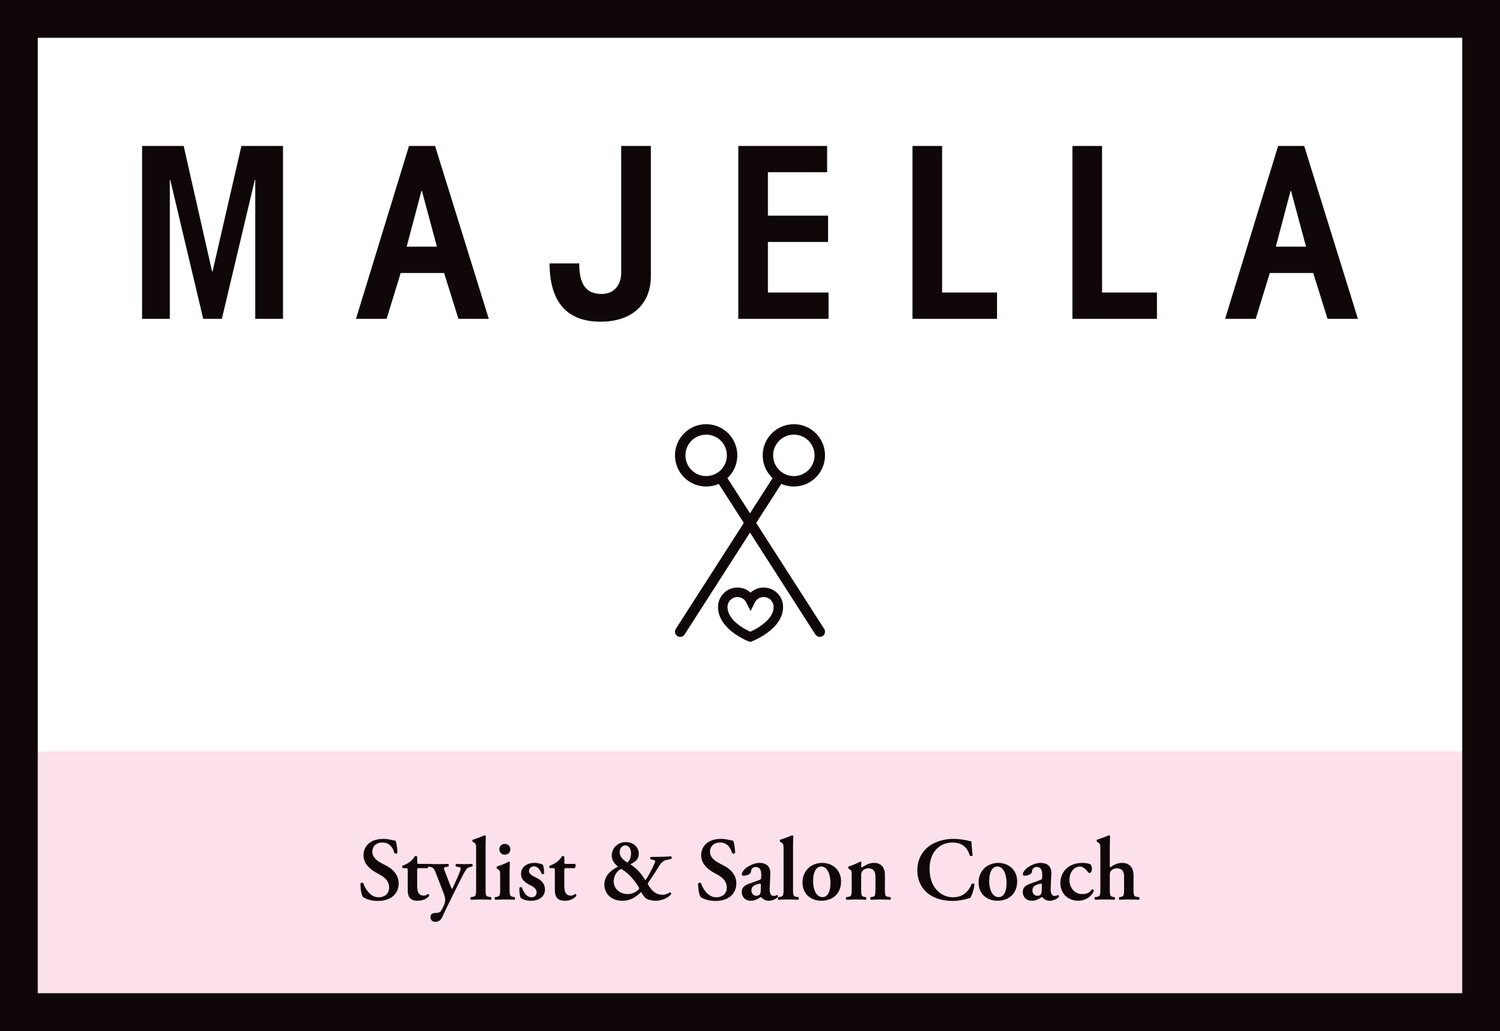 Majella Stylist & Salon Coach